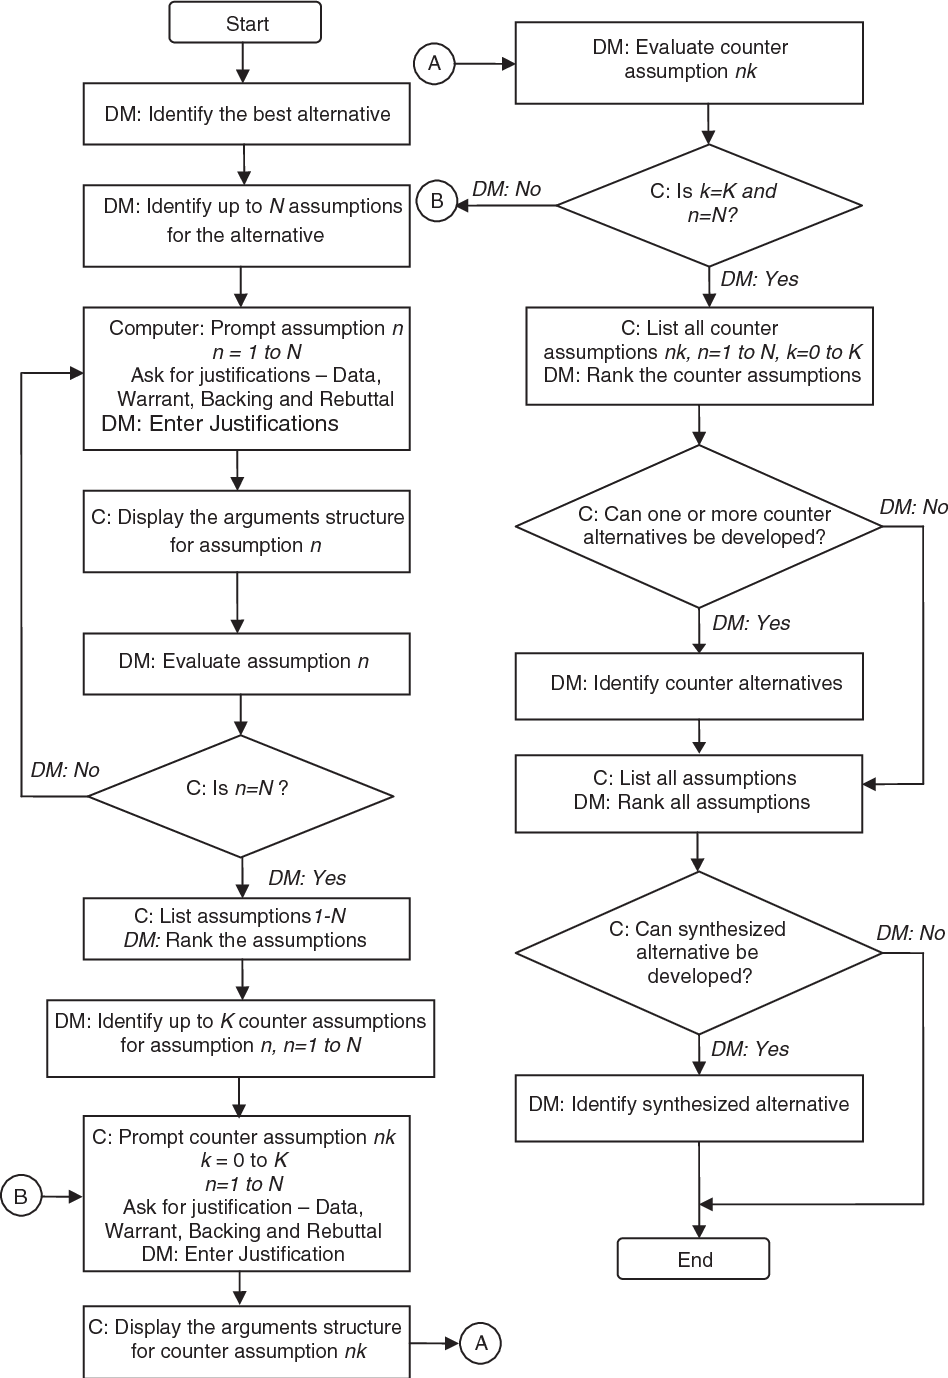 Dialectic decision support systems: System design and empirical